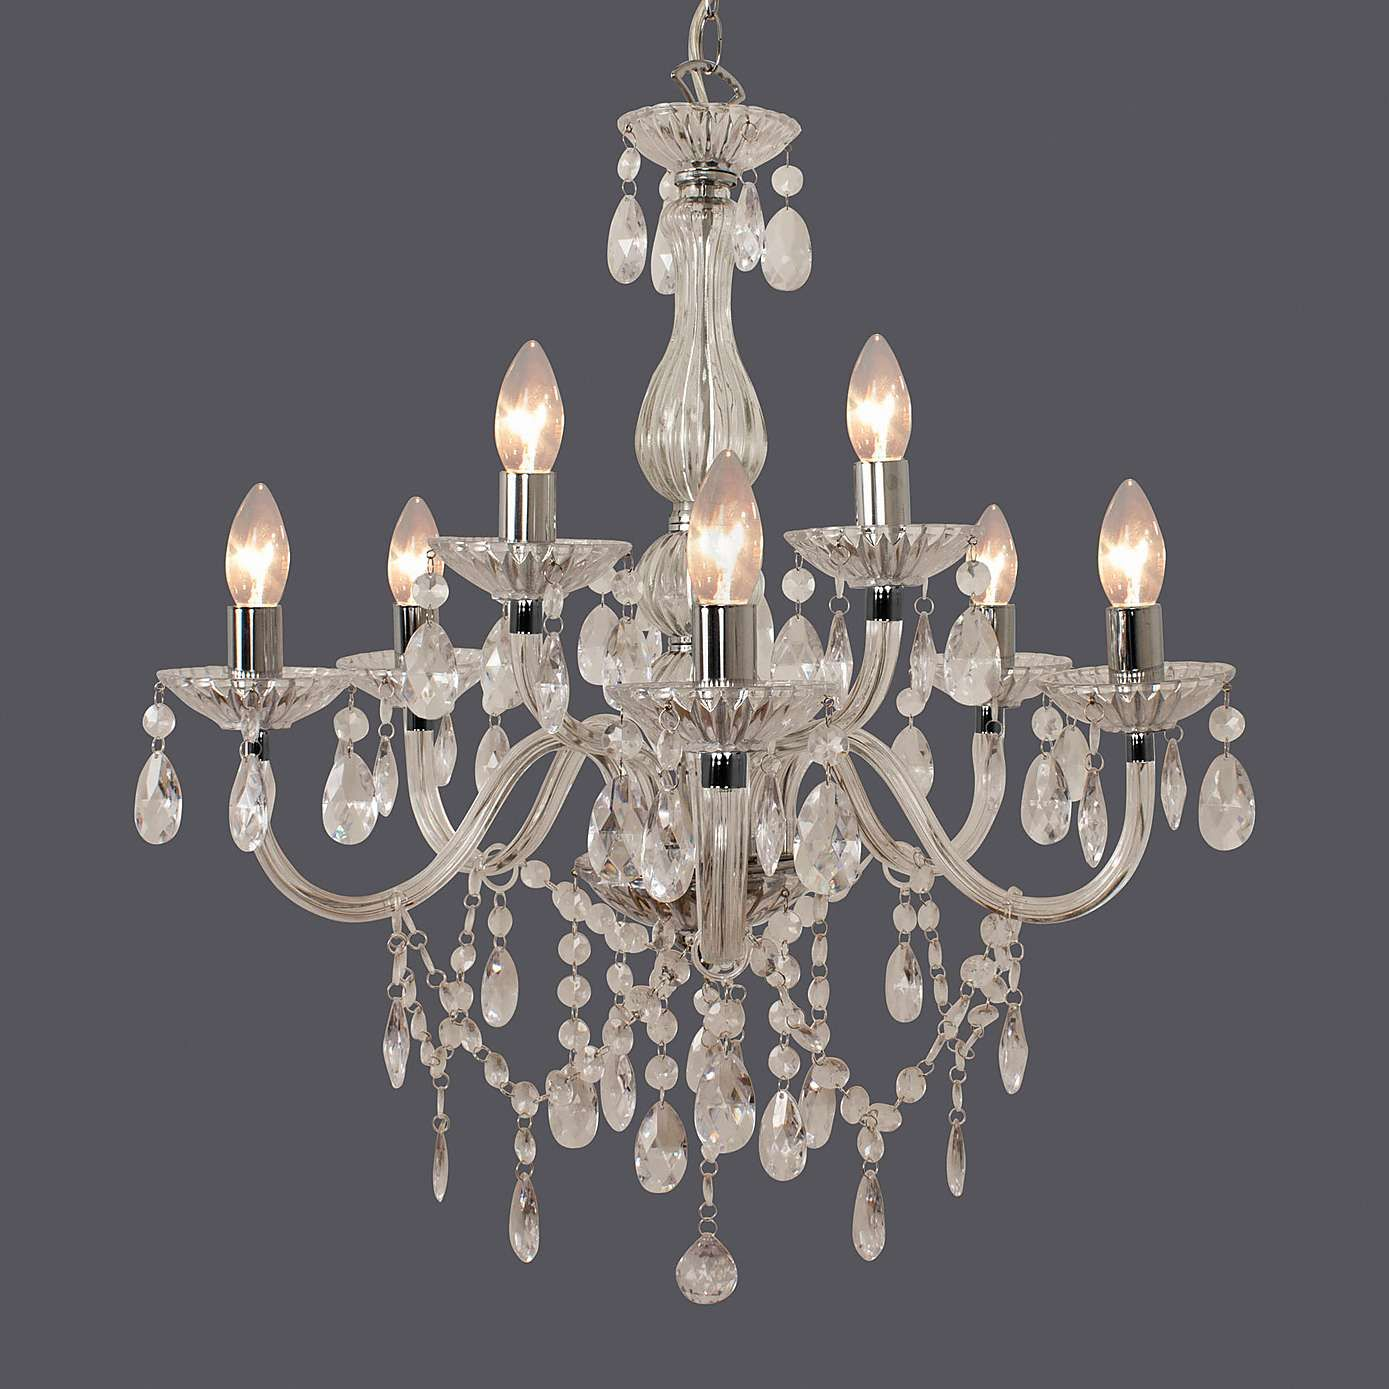 crystal chandelier dunelm # 15